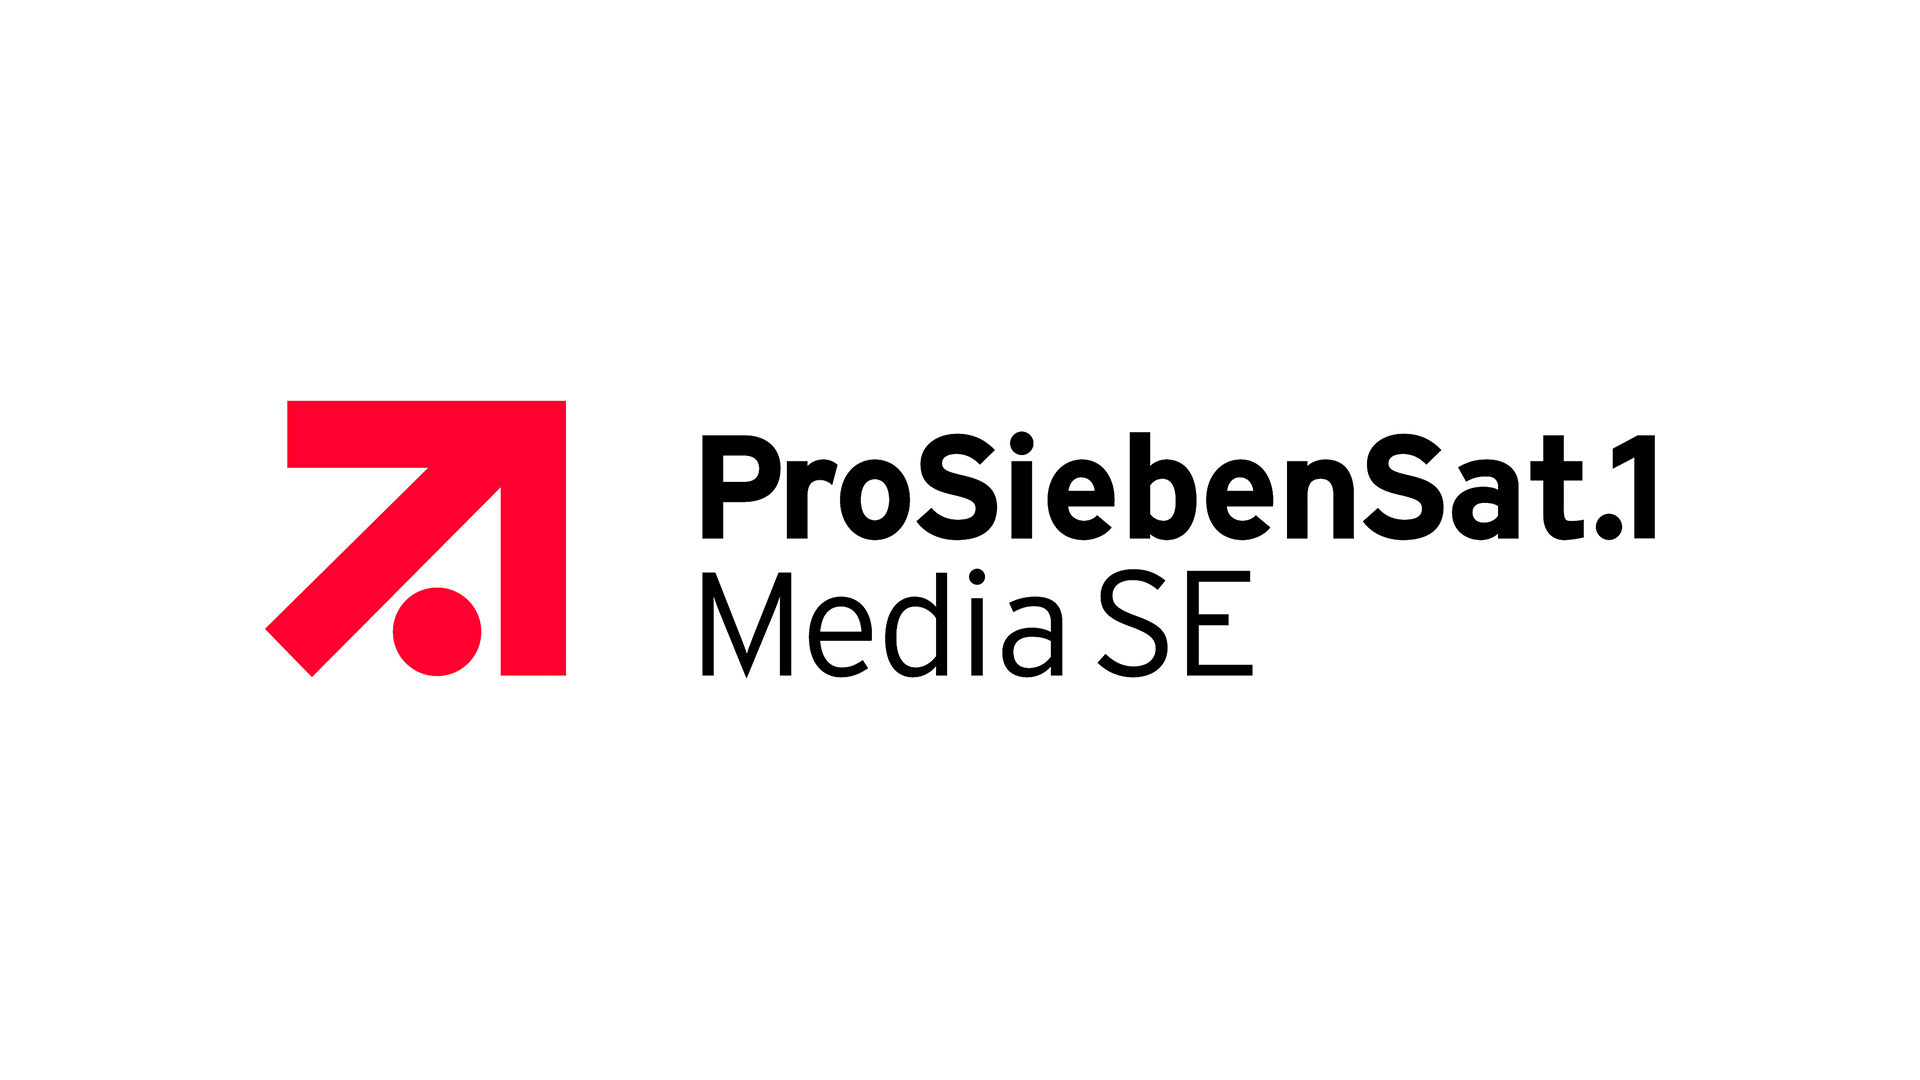 PULS 24: State-of-the-art digital news platform from Austria goes live